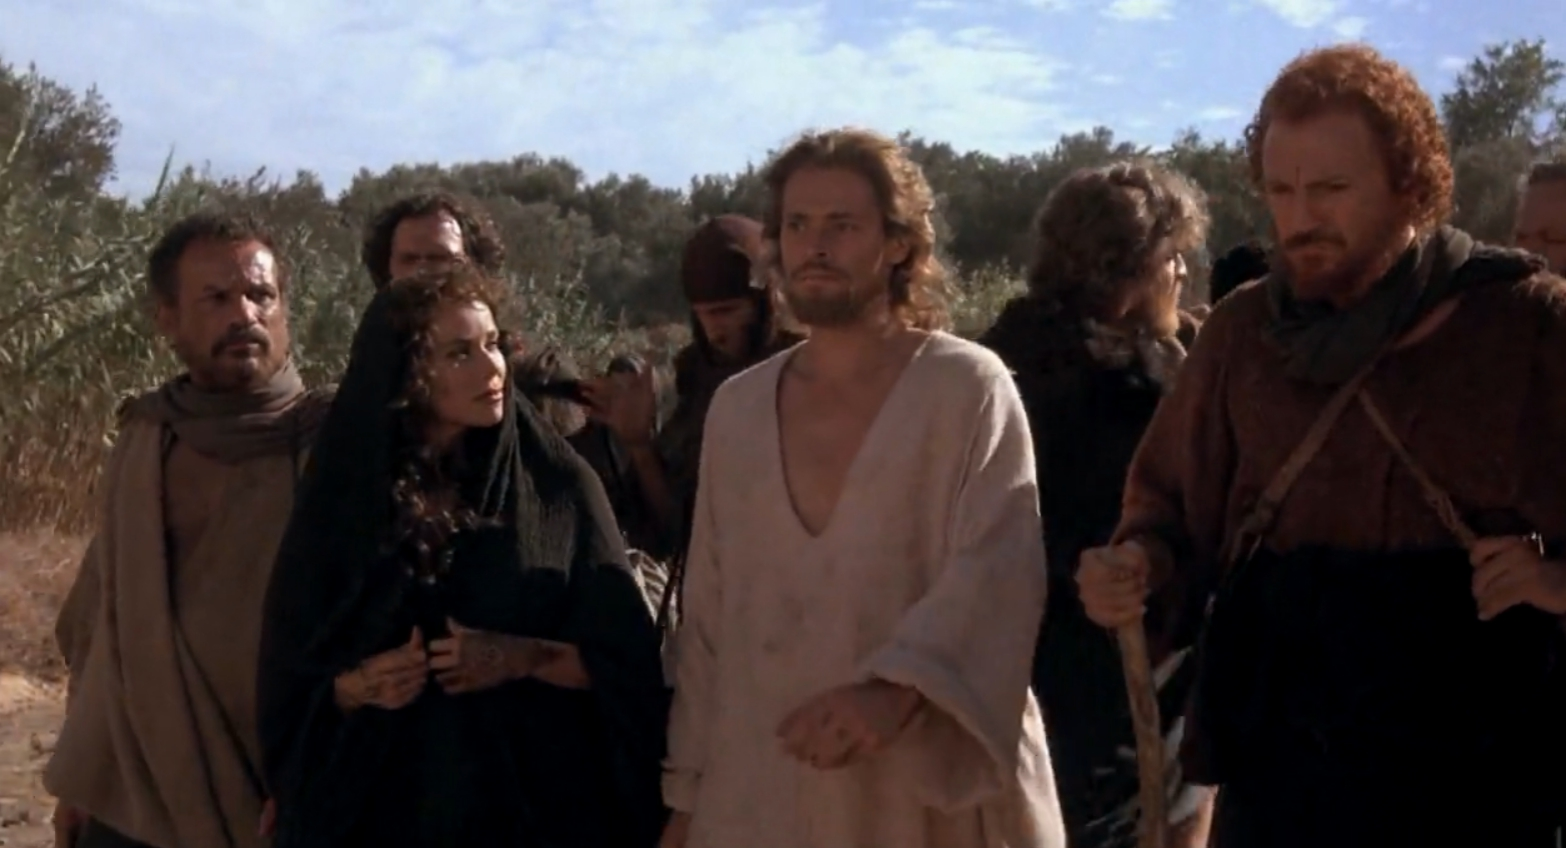 The Last Temptation of Christ Movie Review